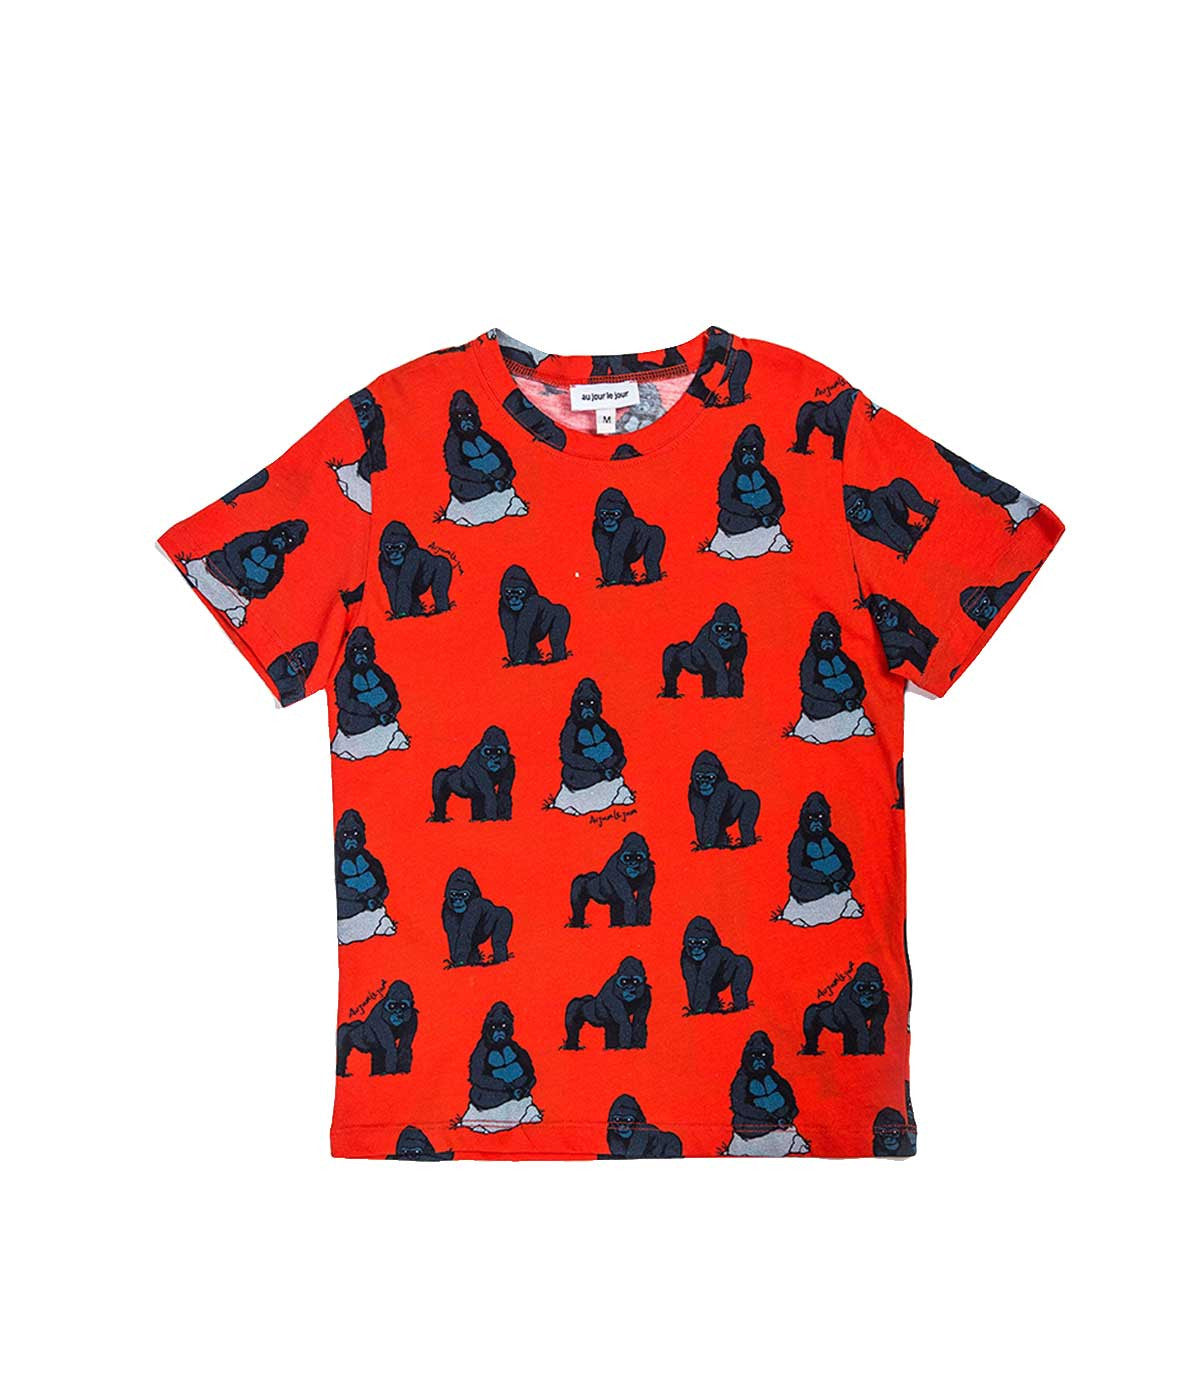 Red Orangle Gorilla Print T-shirt